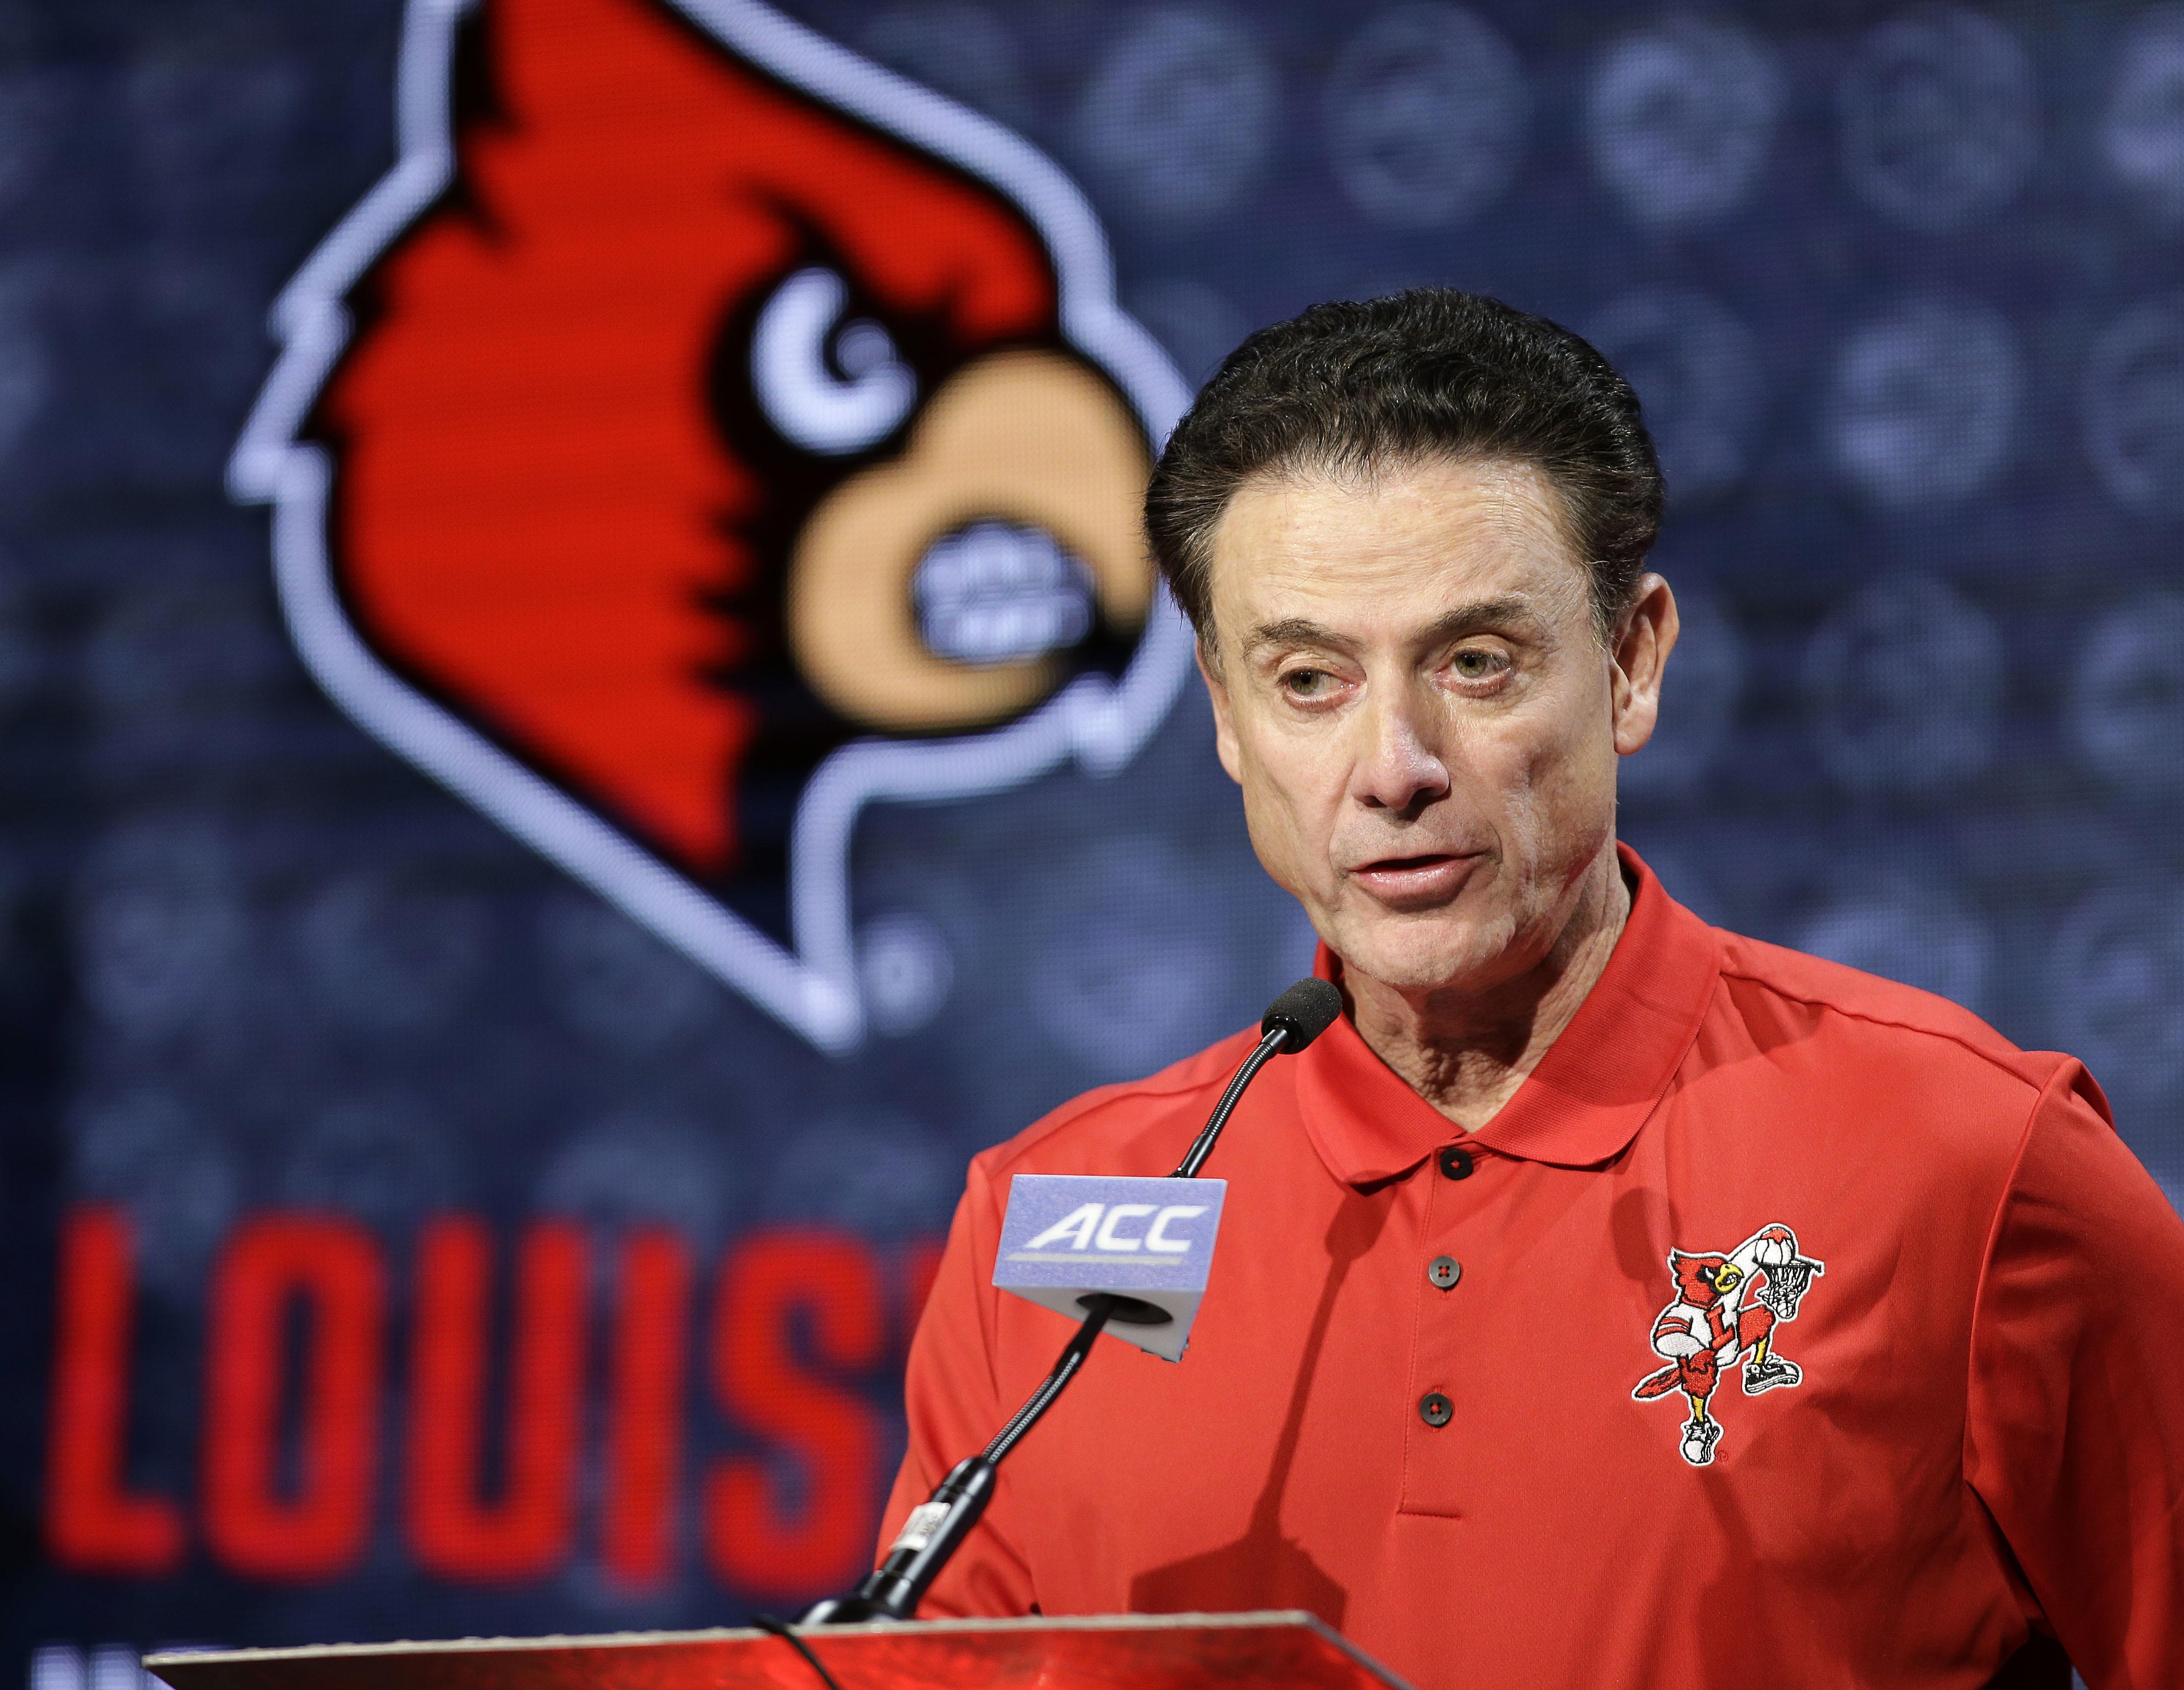 Louisville_pitino_basketball_93992